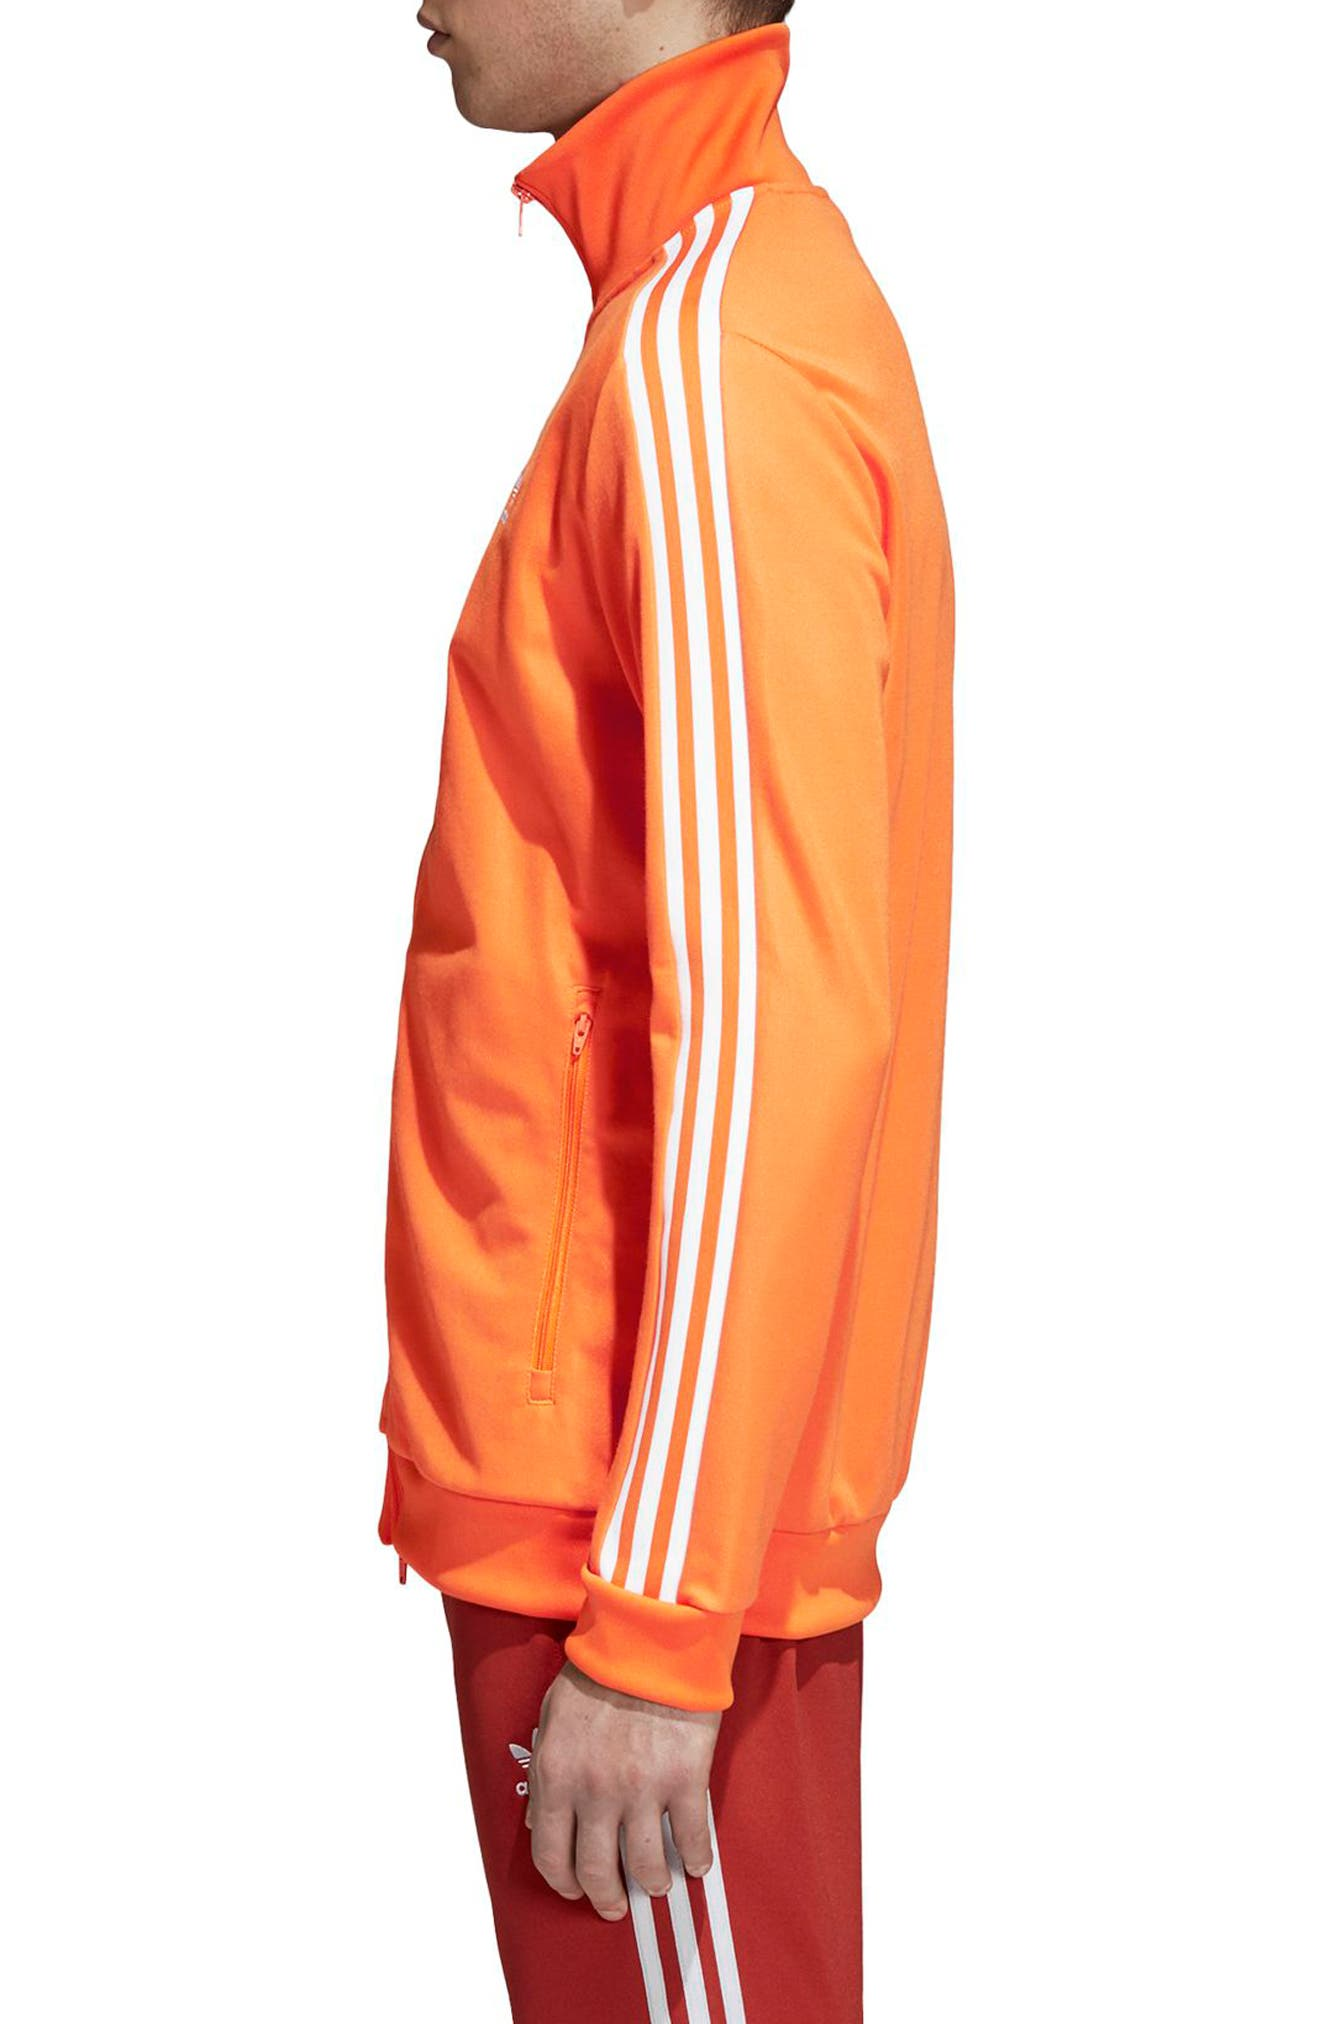 BB Track Jacket,                             Alternate thumbnail 3, color,                             Bright Orange